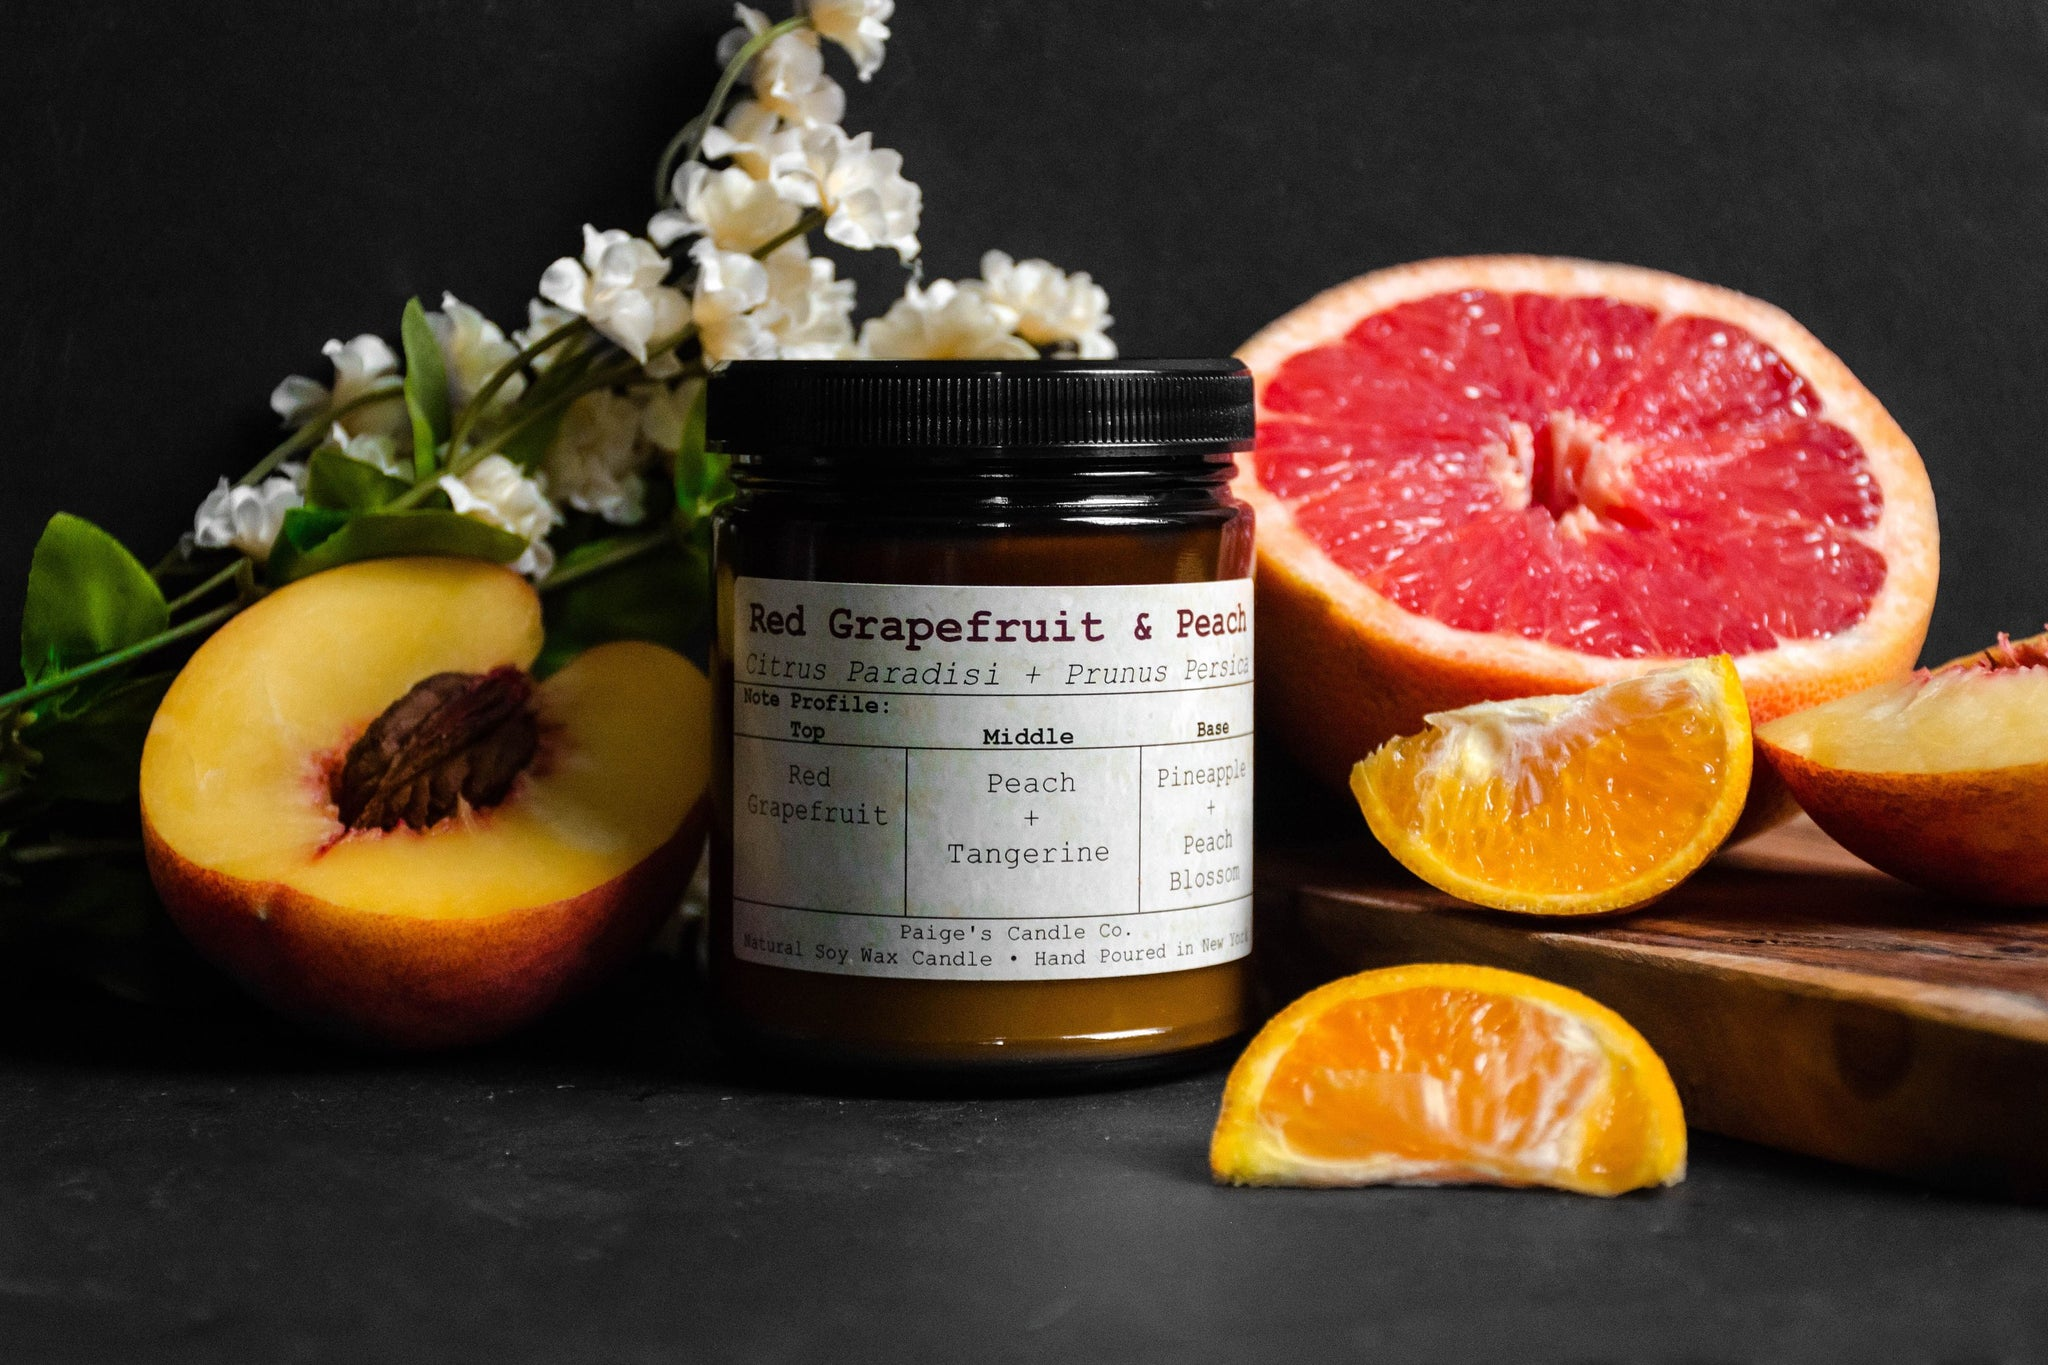 Red Grapefruit & Peach Taxonomy Candle